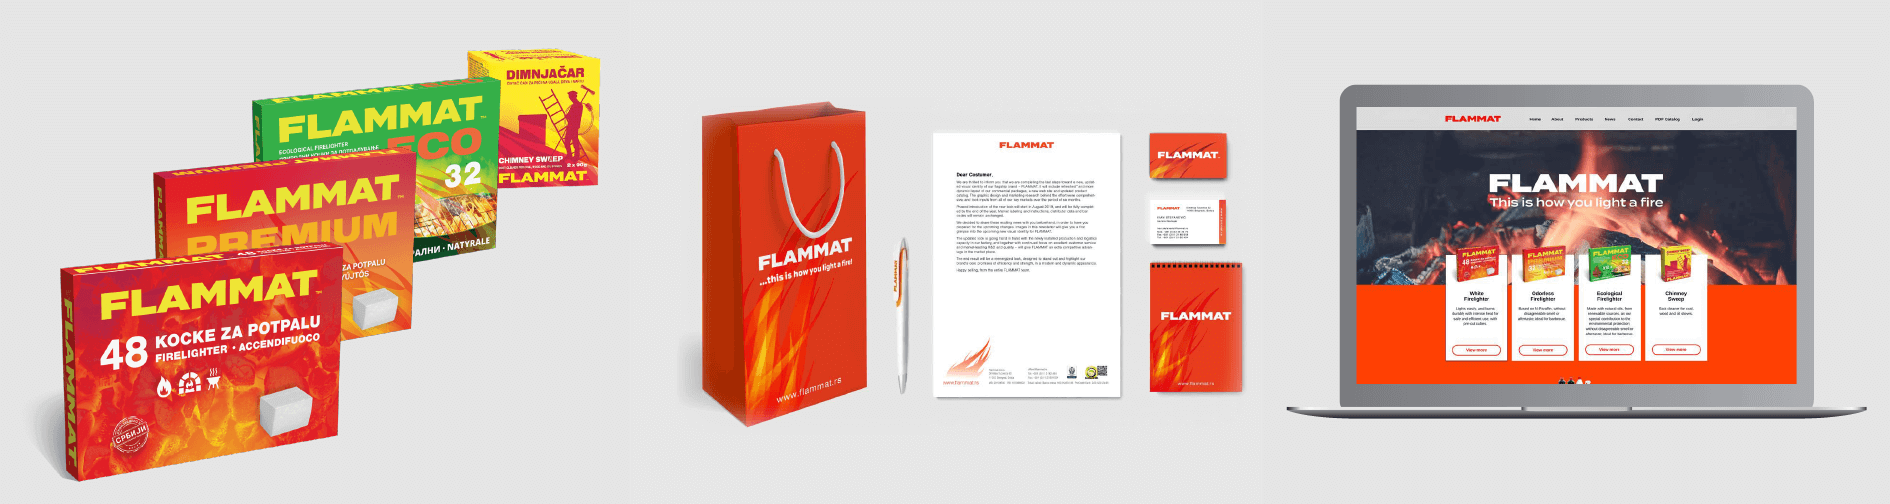 FLAMMAT – updated brand visual identity, new web site, and product catalog